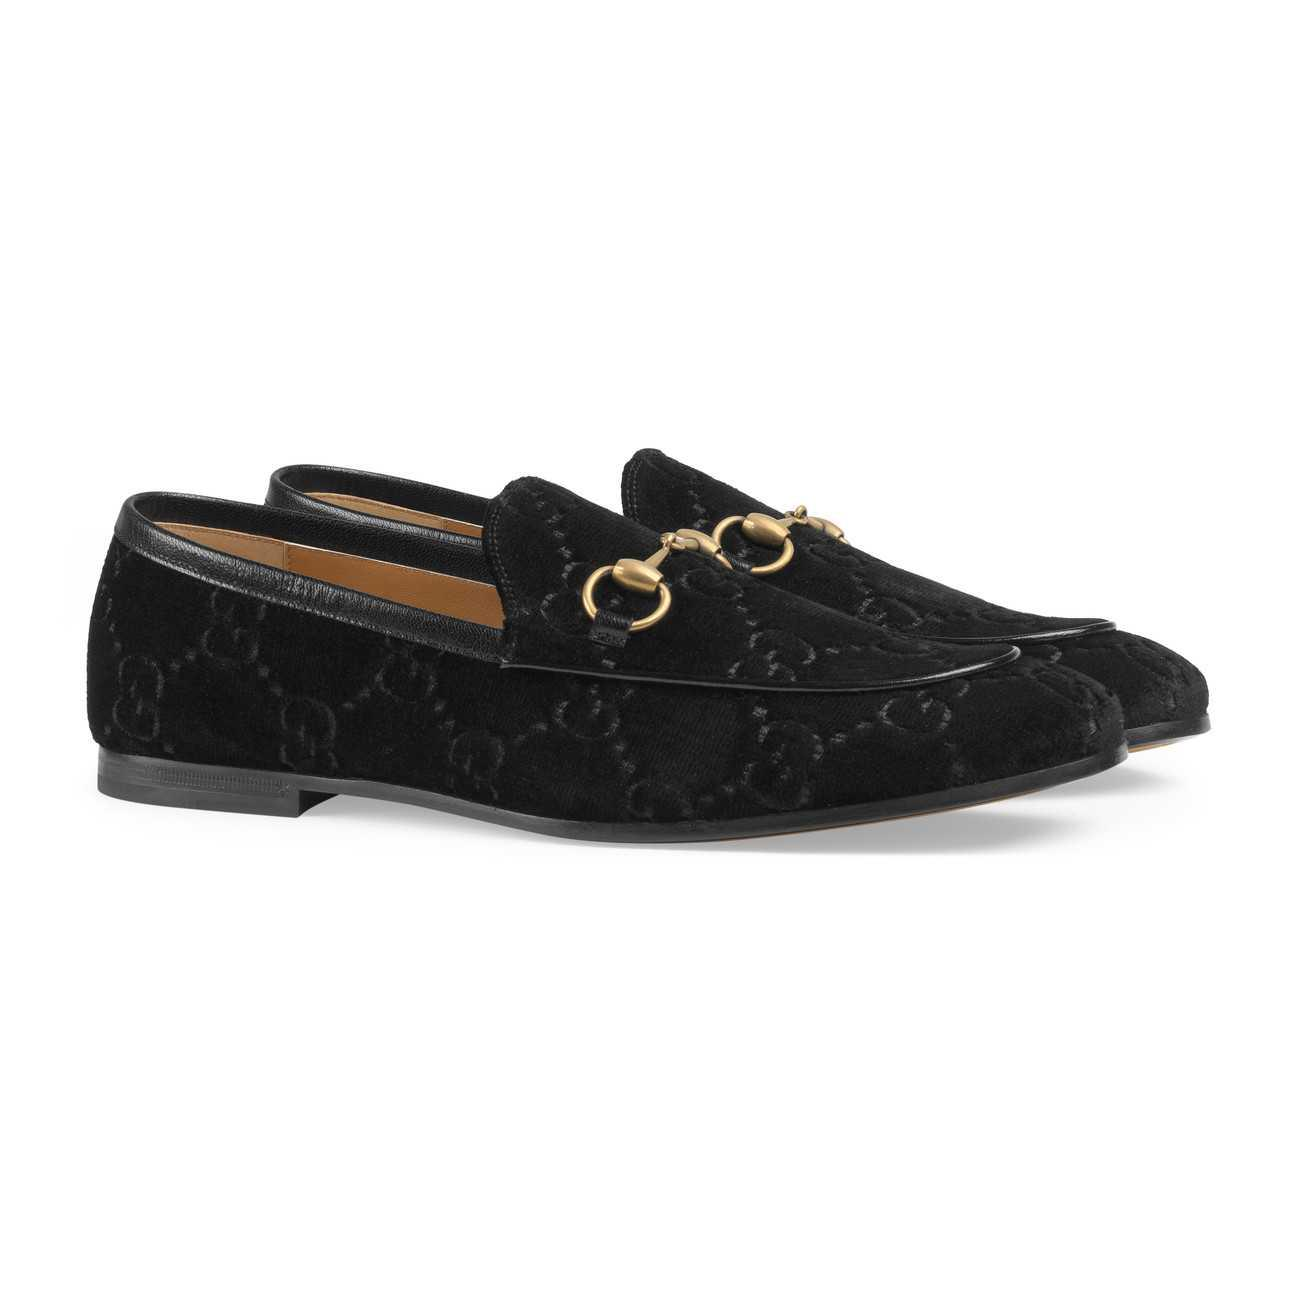 e56b1254fb8 Gucci - Black Jordaan Gg Velvet Loafer for Men - Lyst. View fullscreen